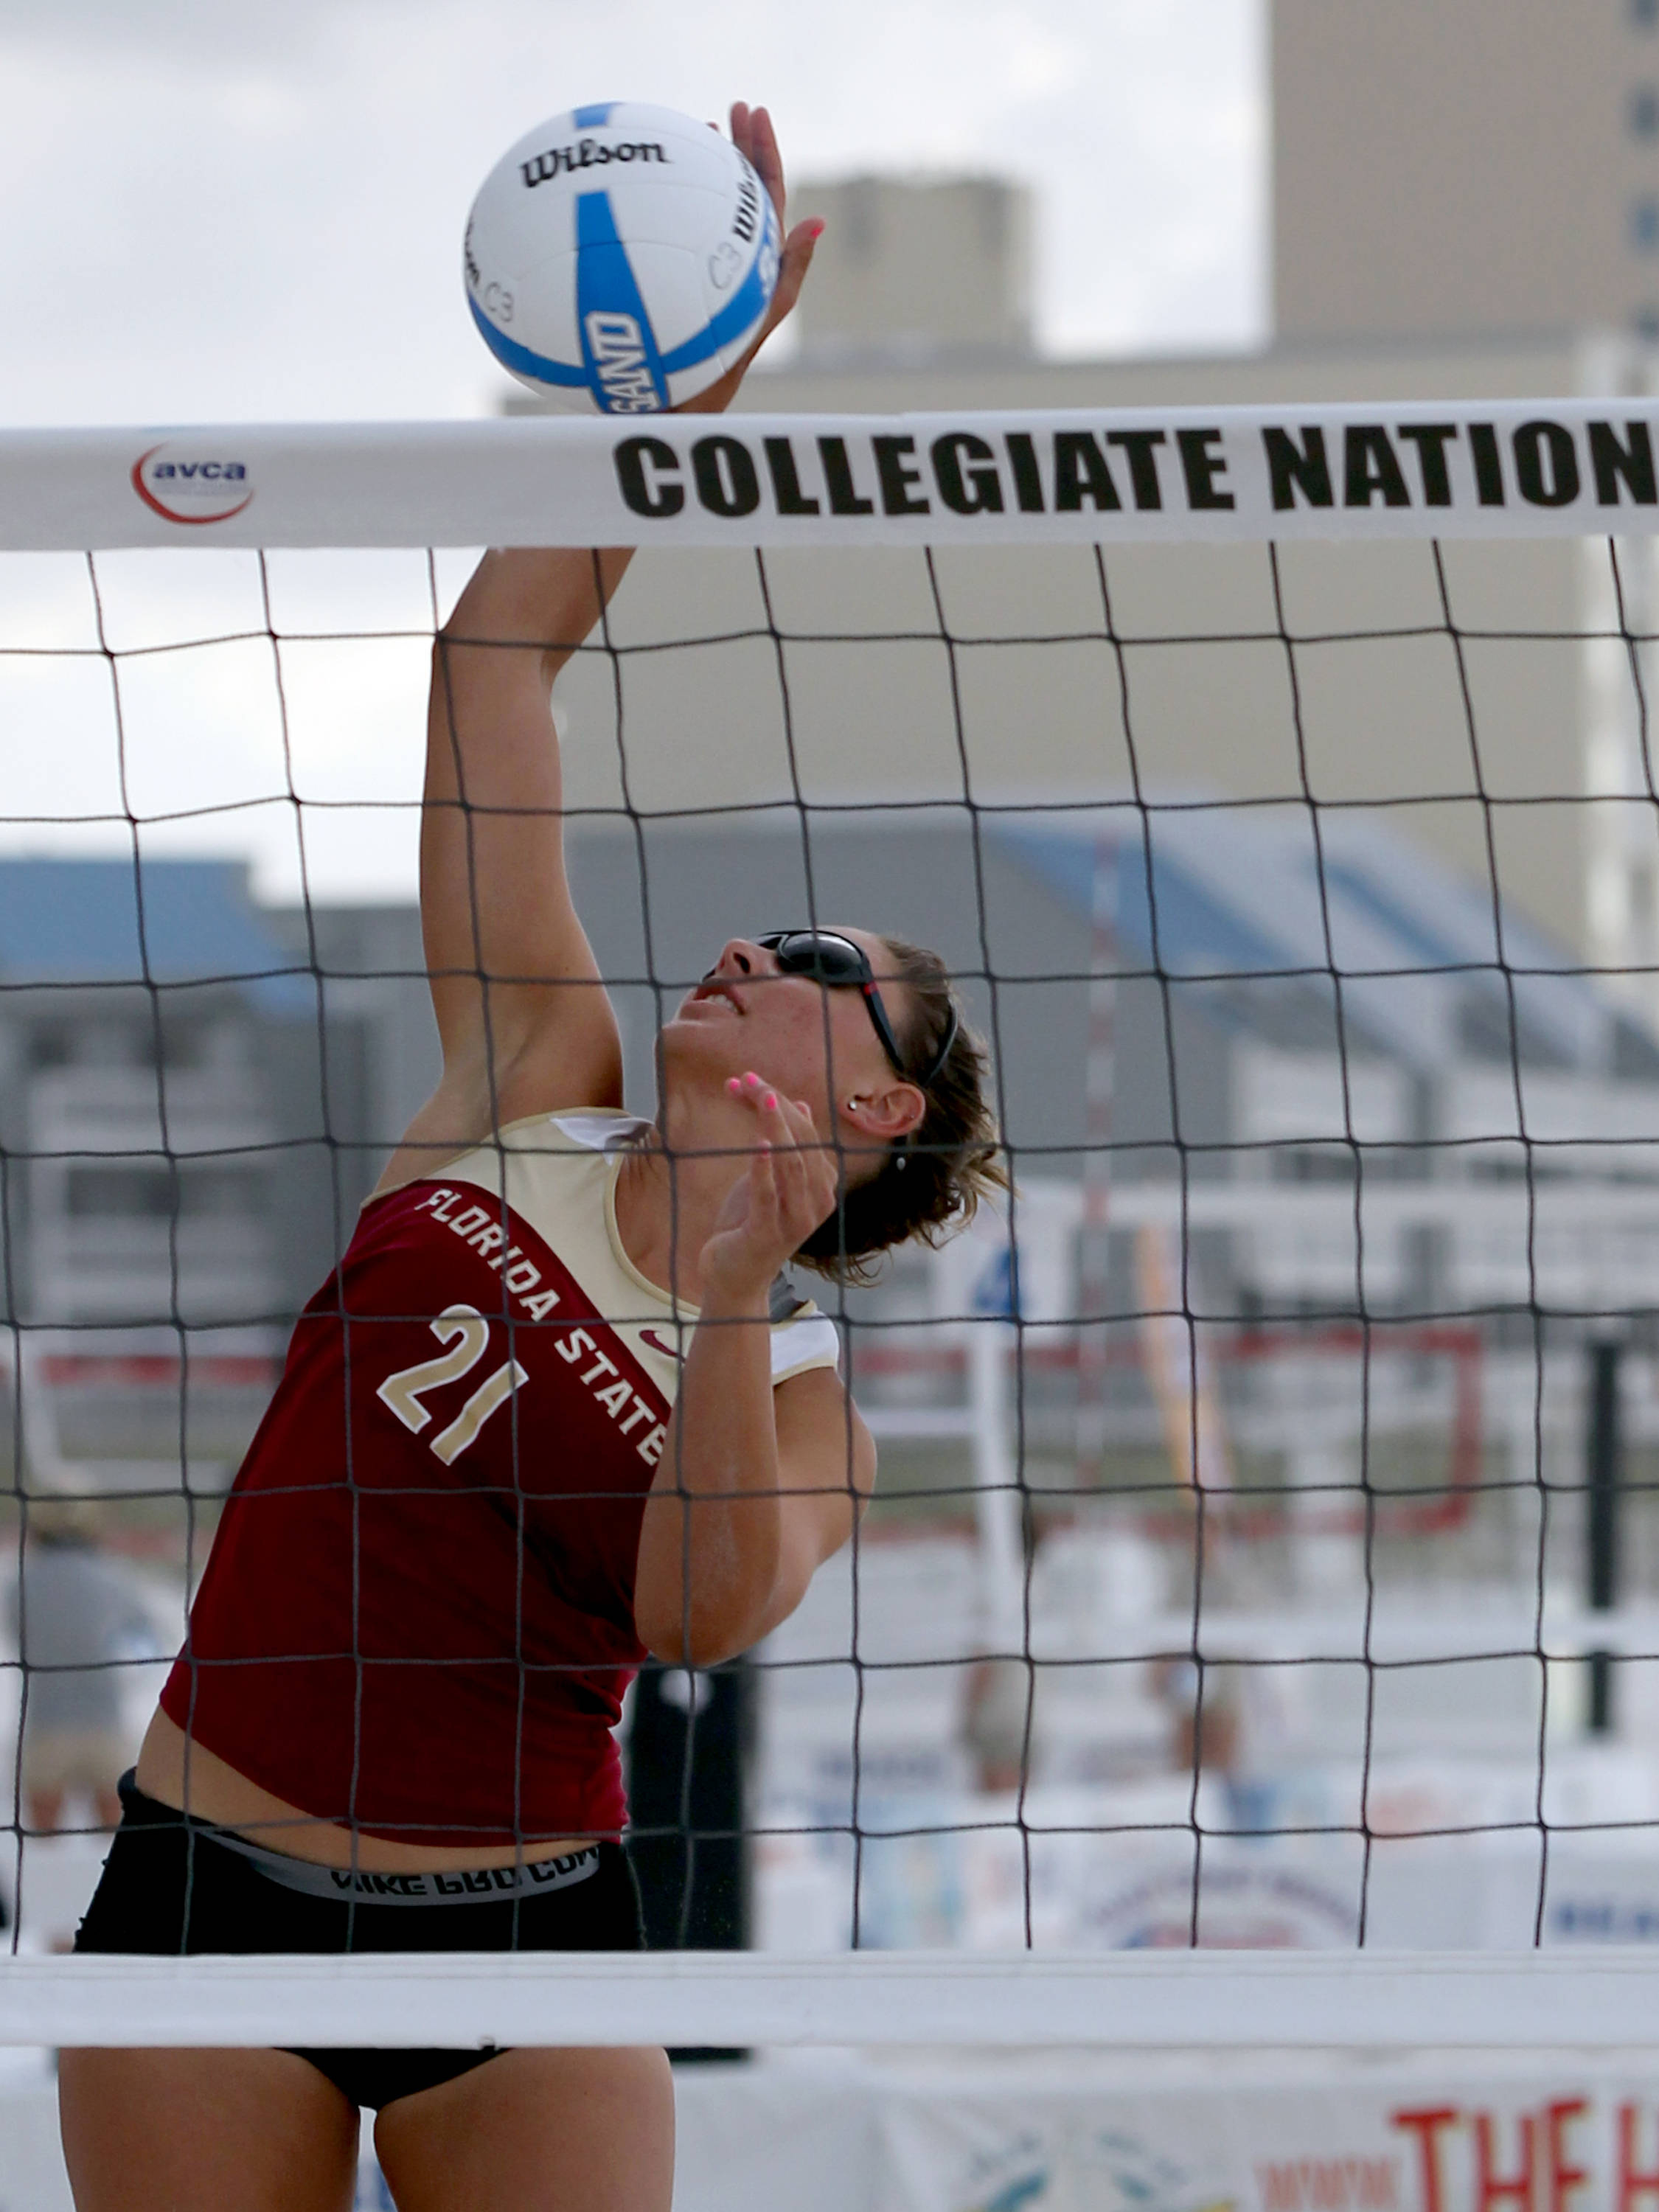 Jace Pardon (21), AVCA Collegiate Sand Volleyball National  Championships - Pairs,  Gulf Shores, Alabama, 05/05/13 . (Photo by Steve Musco)